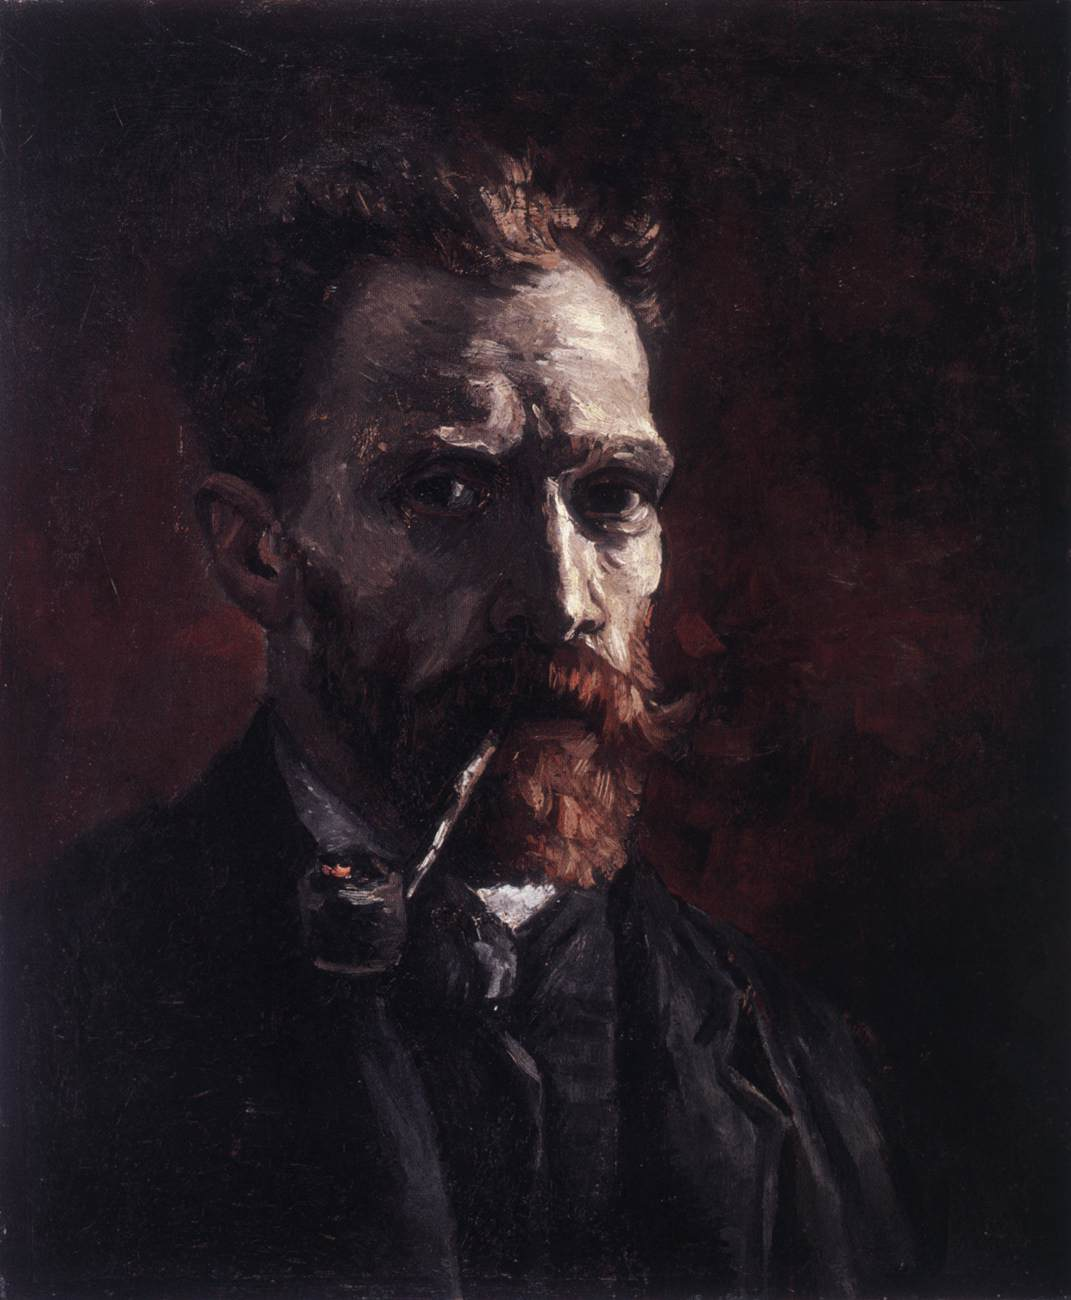 Van Gogh Self Portrait with Pipe